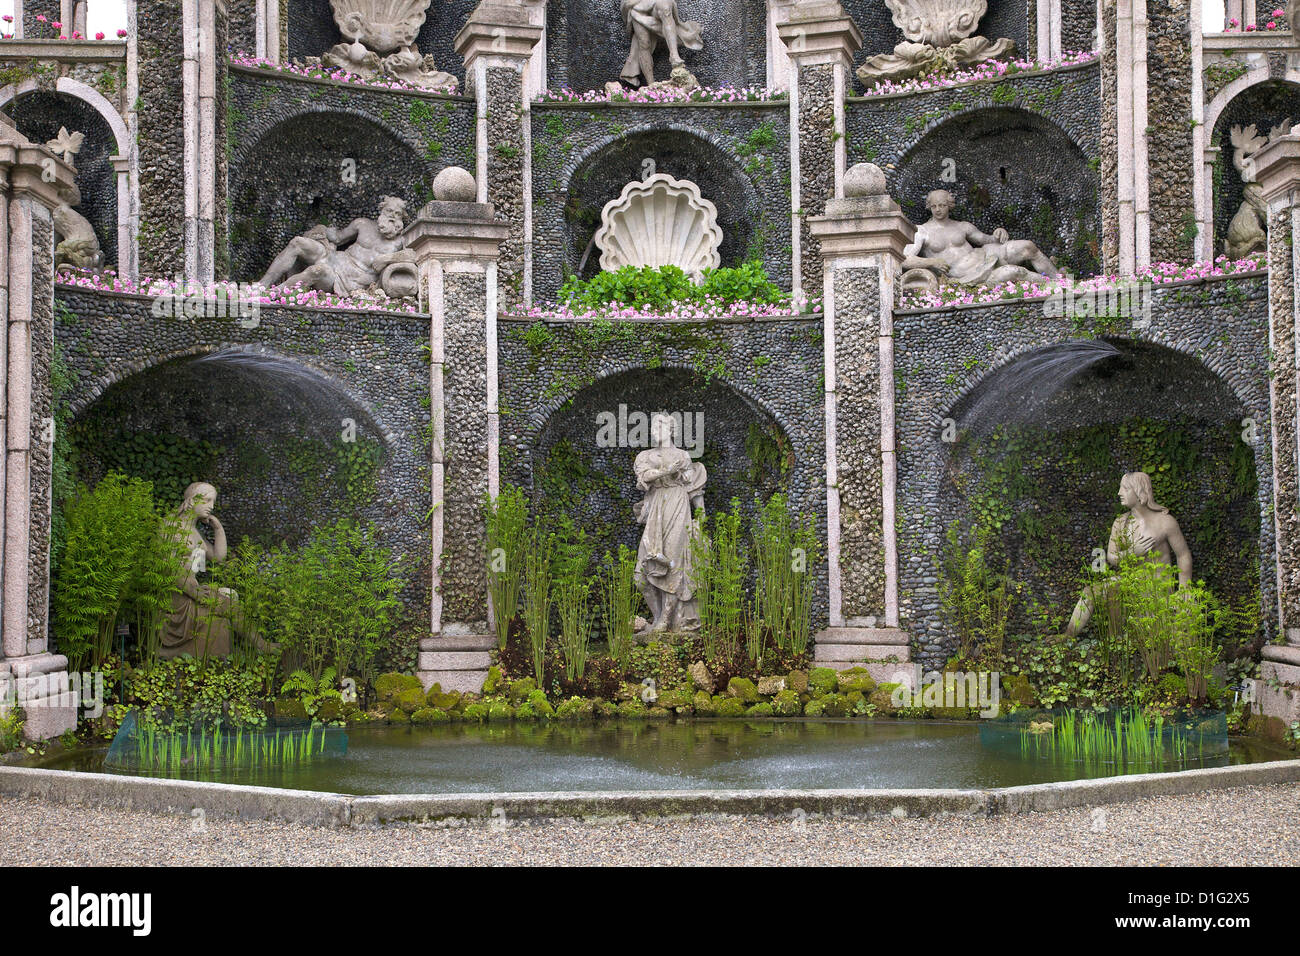 Detail of Water Theatre, Isola Bella Palace Gardens, Borromean Islands, Lake Maggiore, Piedmont, Italian Lakes, - Stock Image